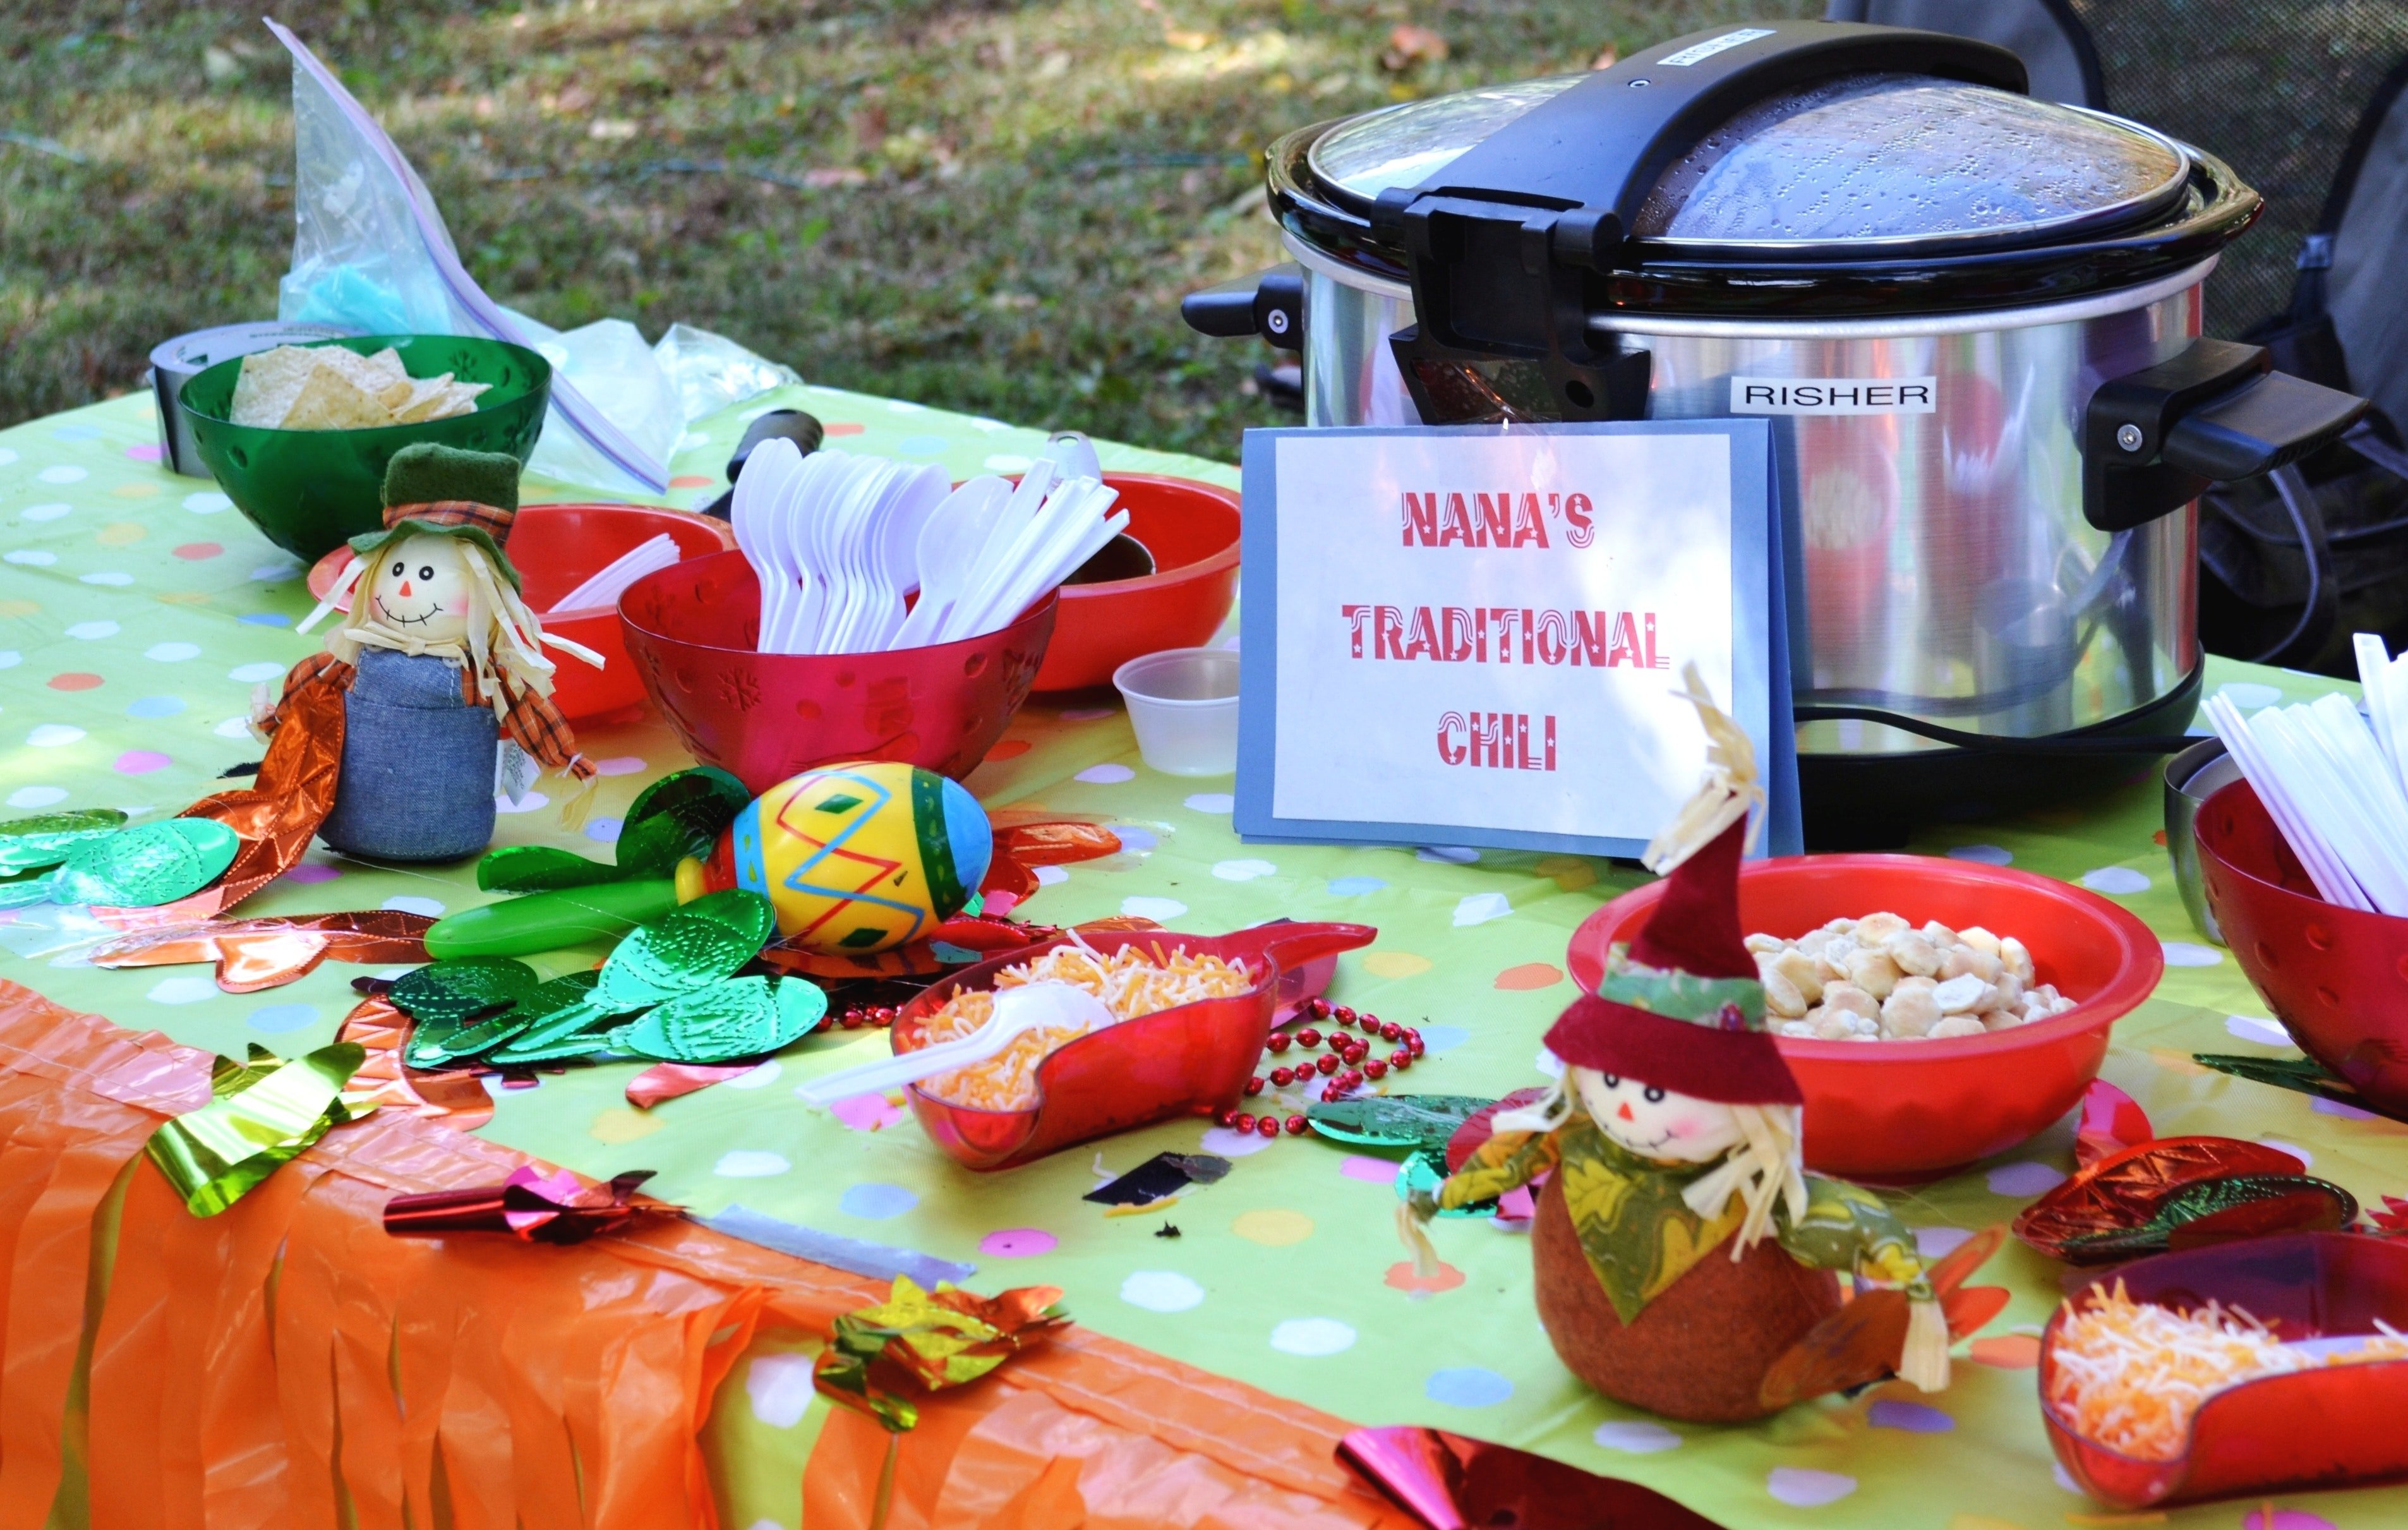 10 Ideal Chili Cook Off Theme Ideas chili cook off decoration ideas home decorating ideas